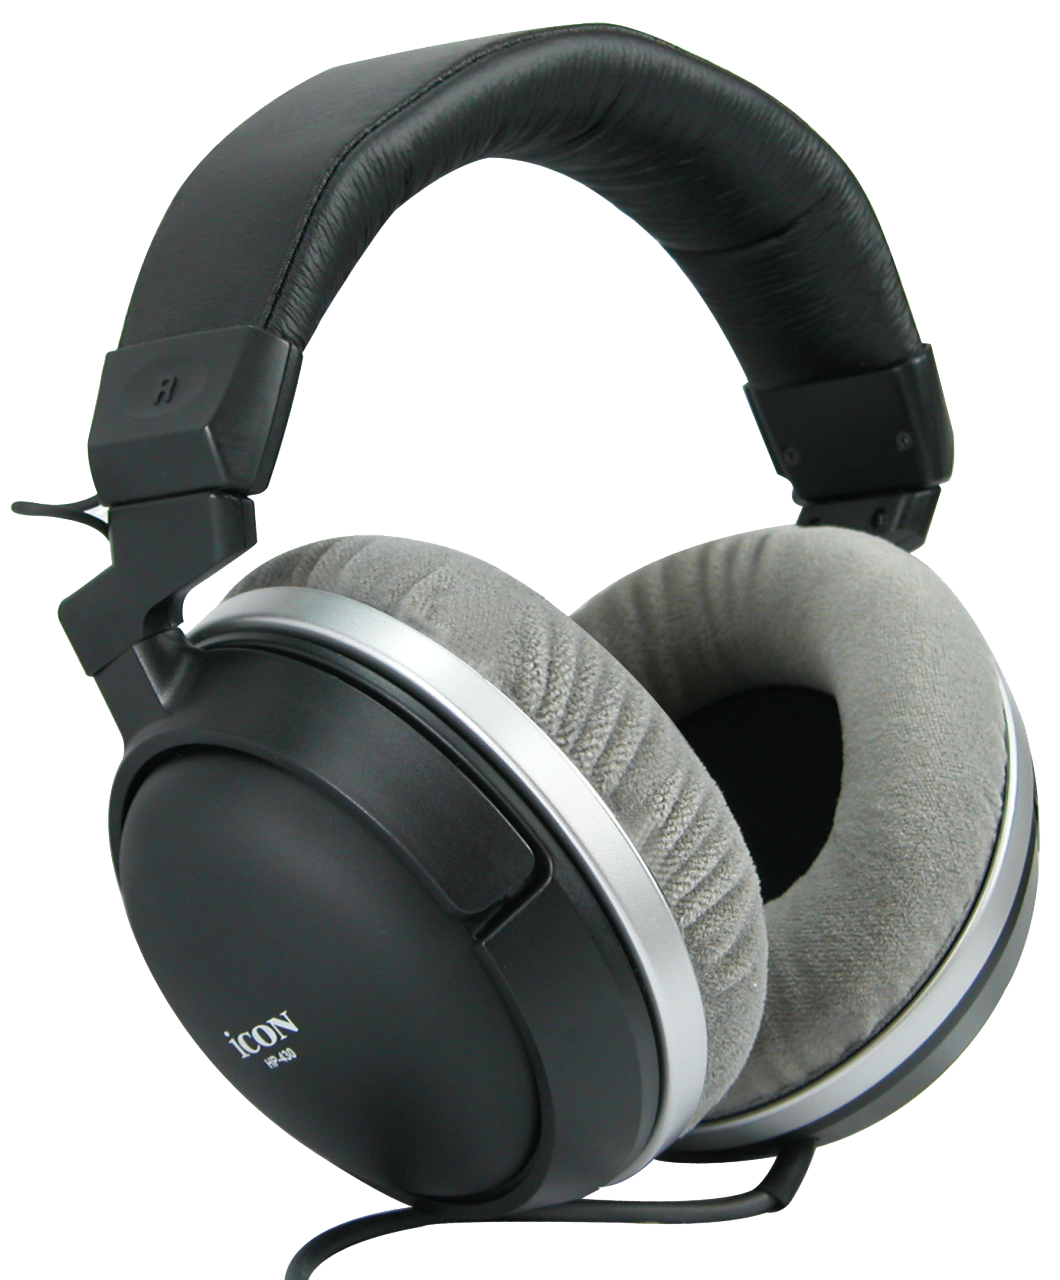 Headphone clipart i love Headphones PNG image images download